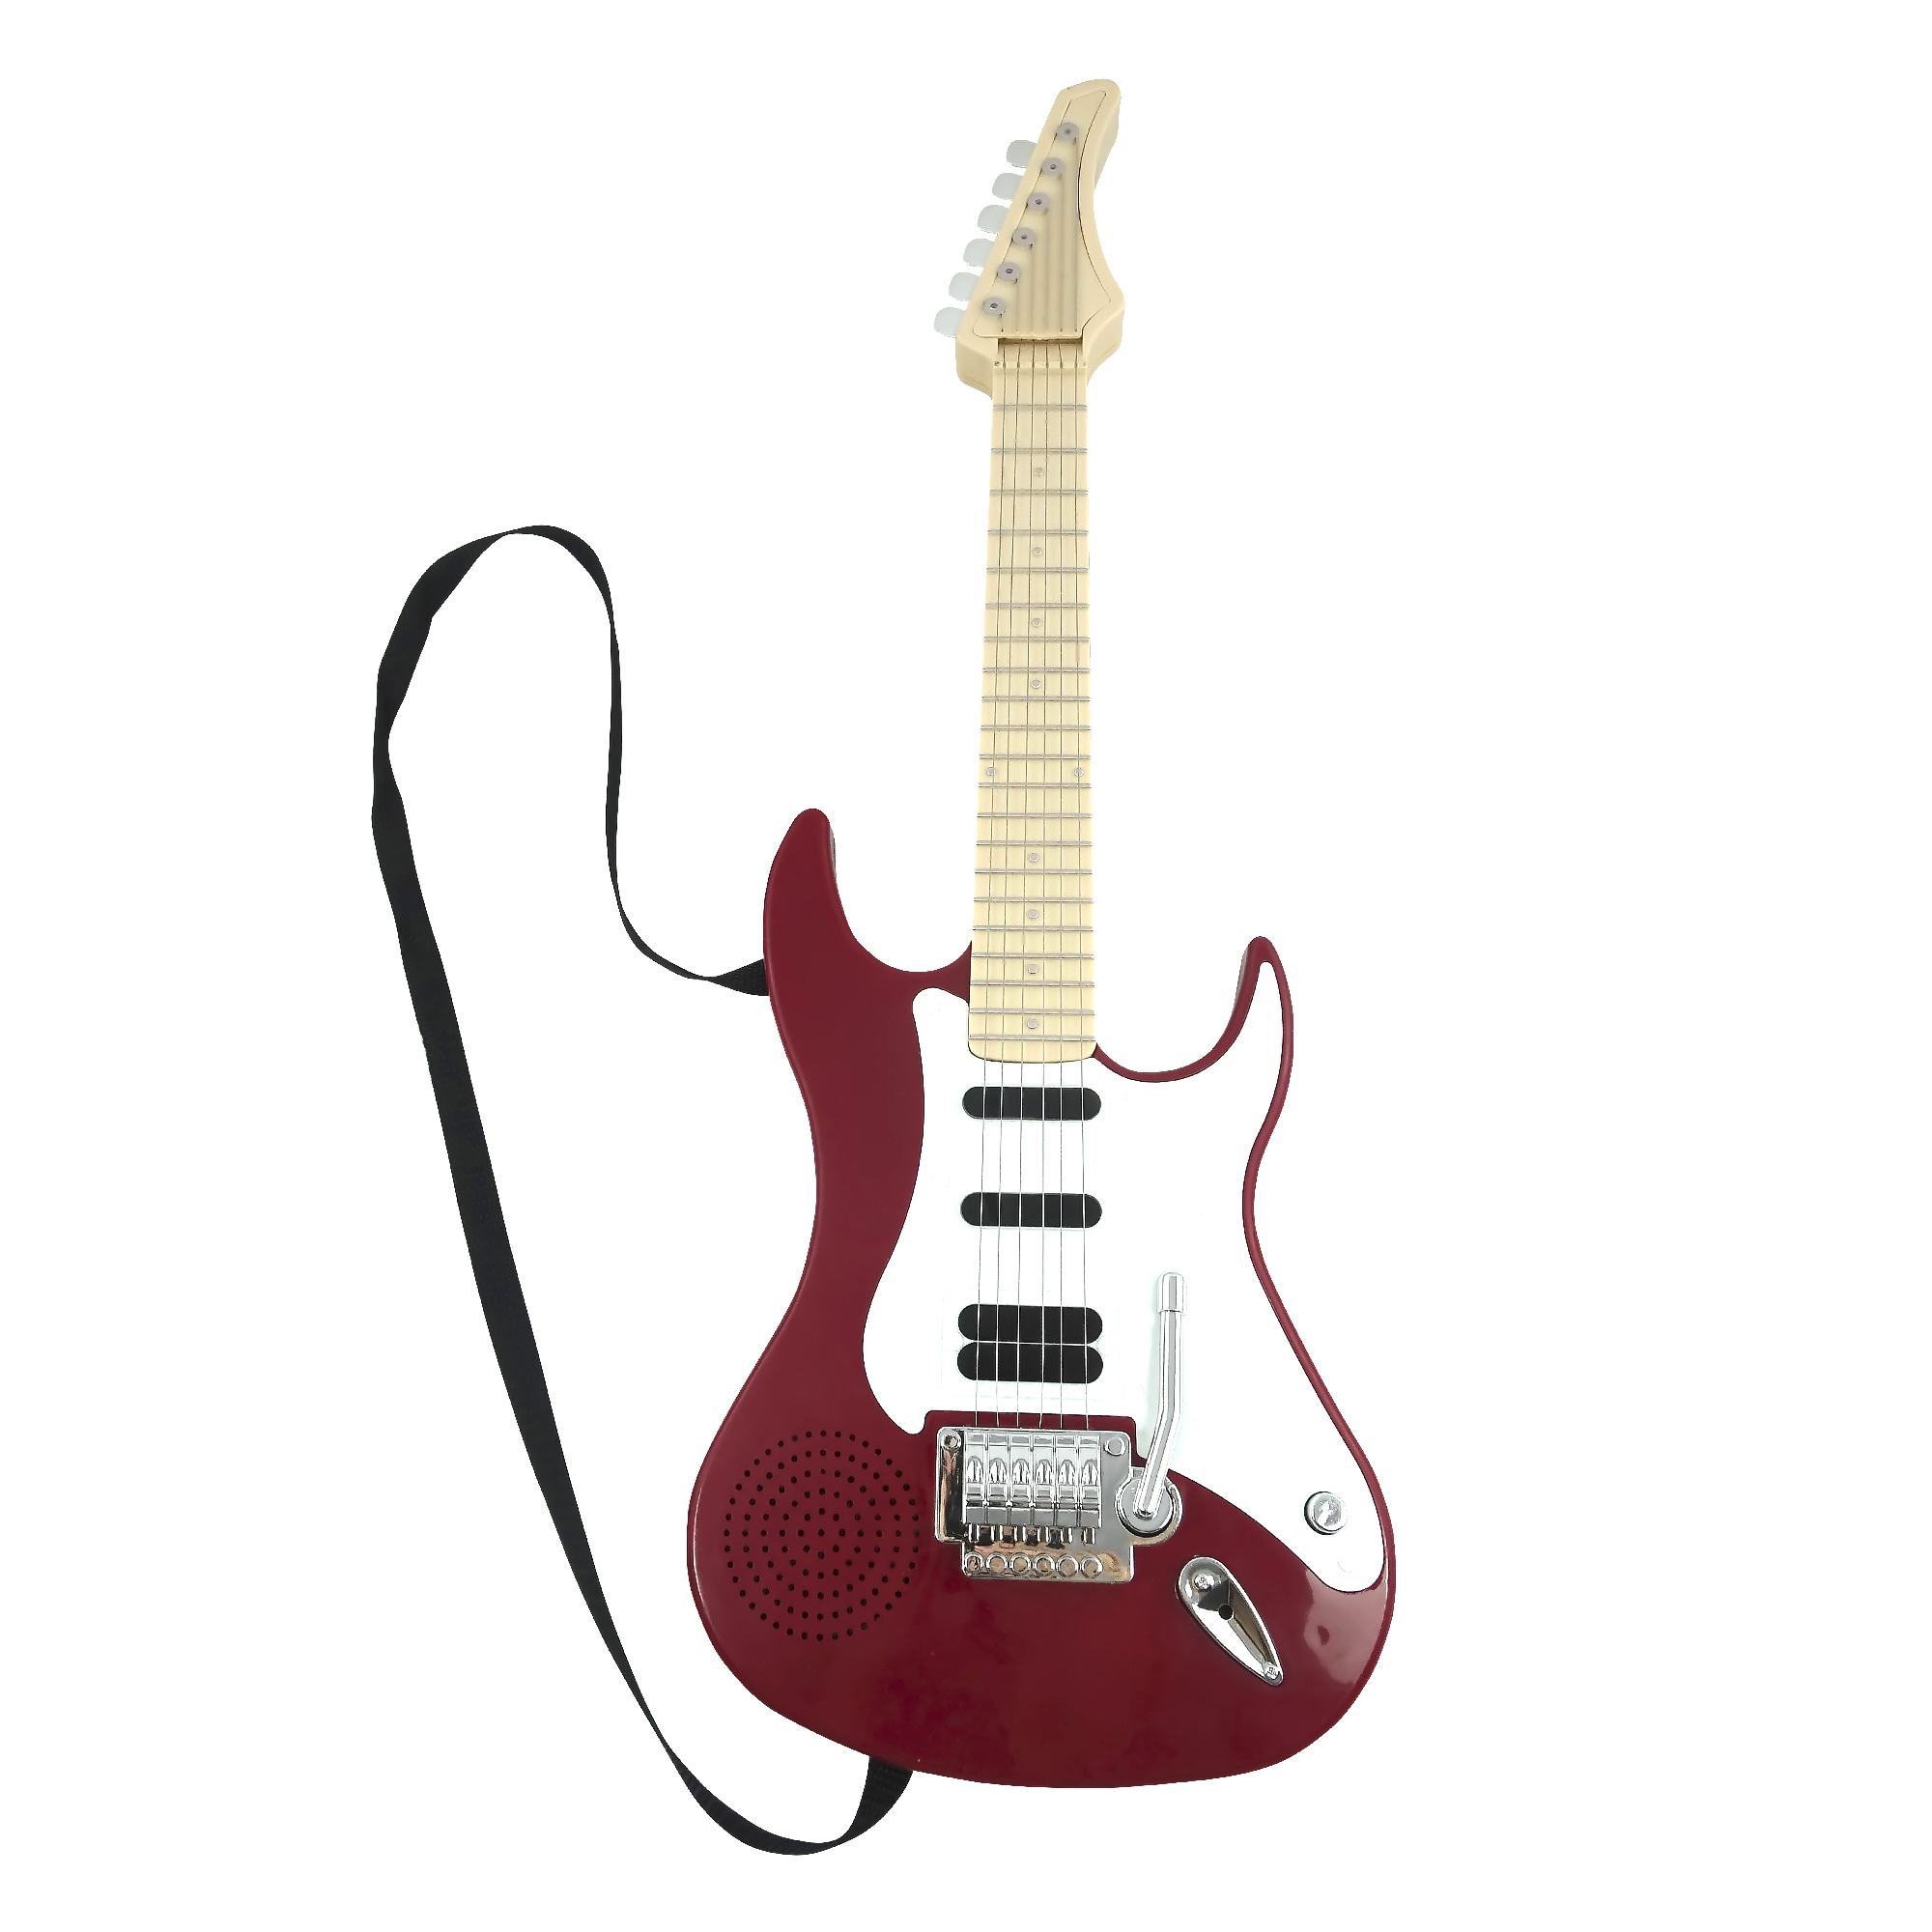 Toy Rock Star Guitar For Kids Battery Operated Musical Rock Guitar Color Red by